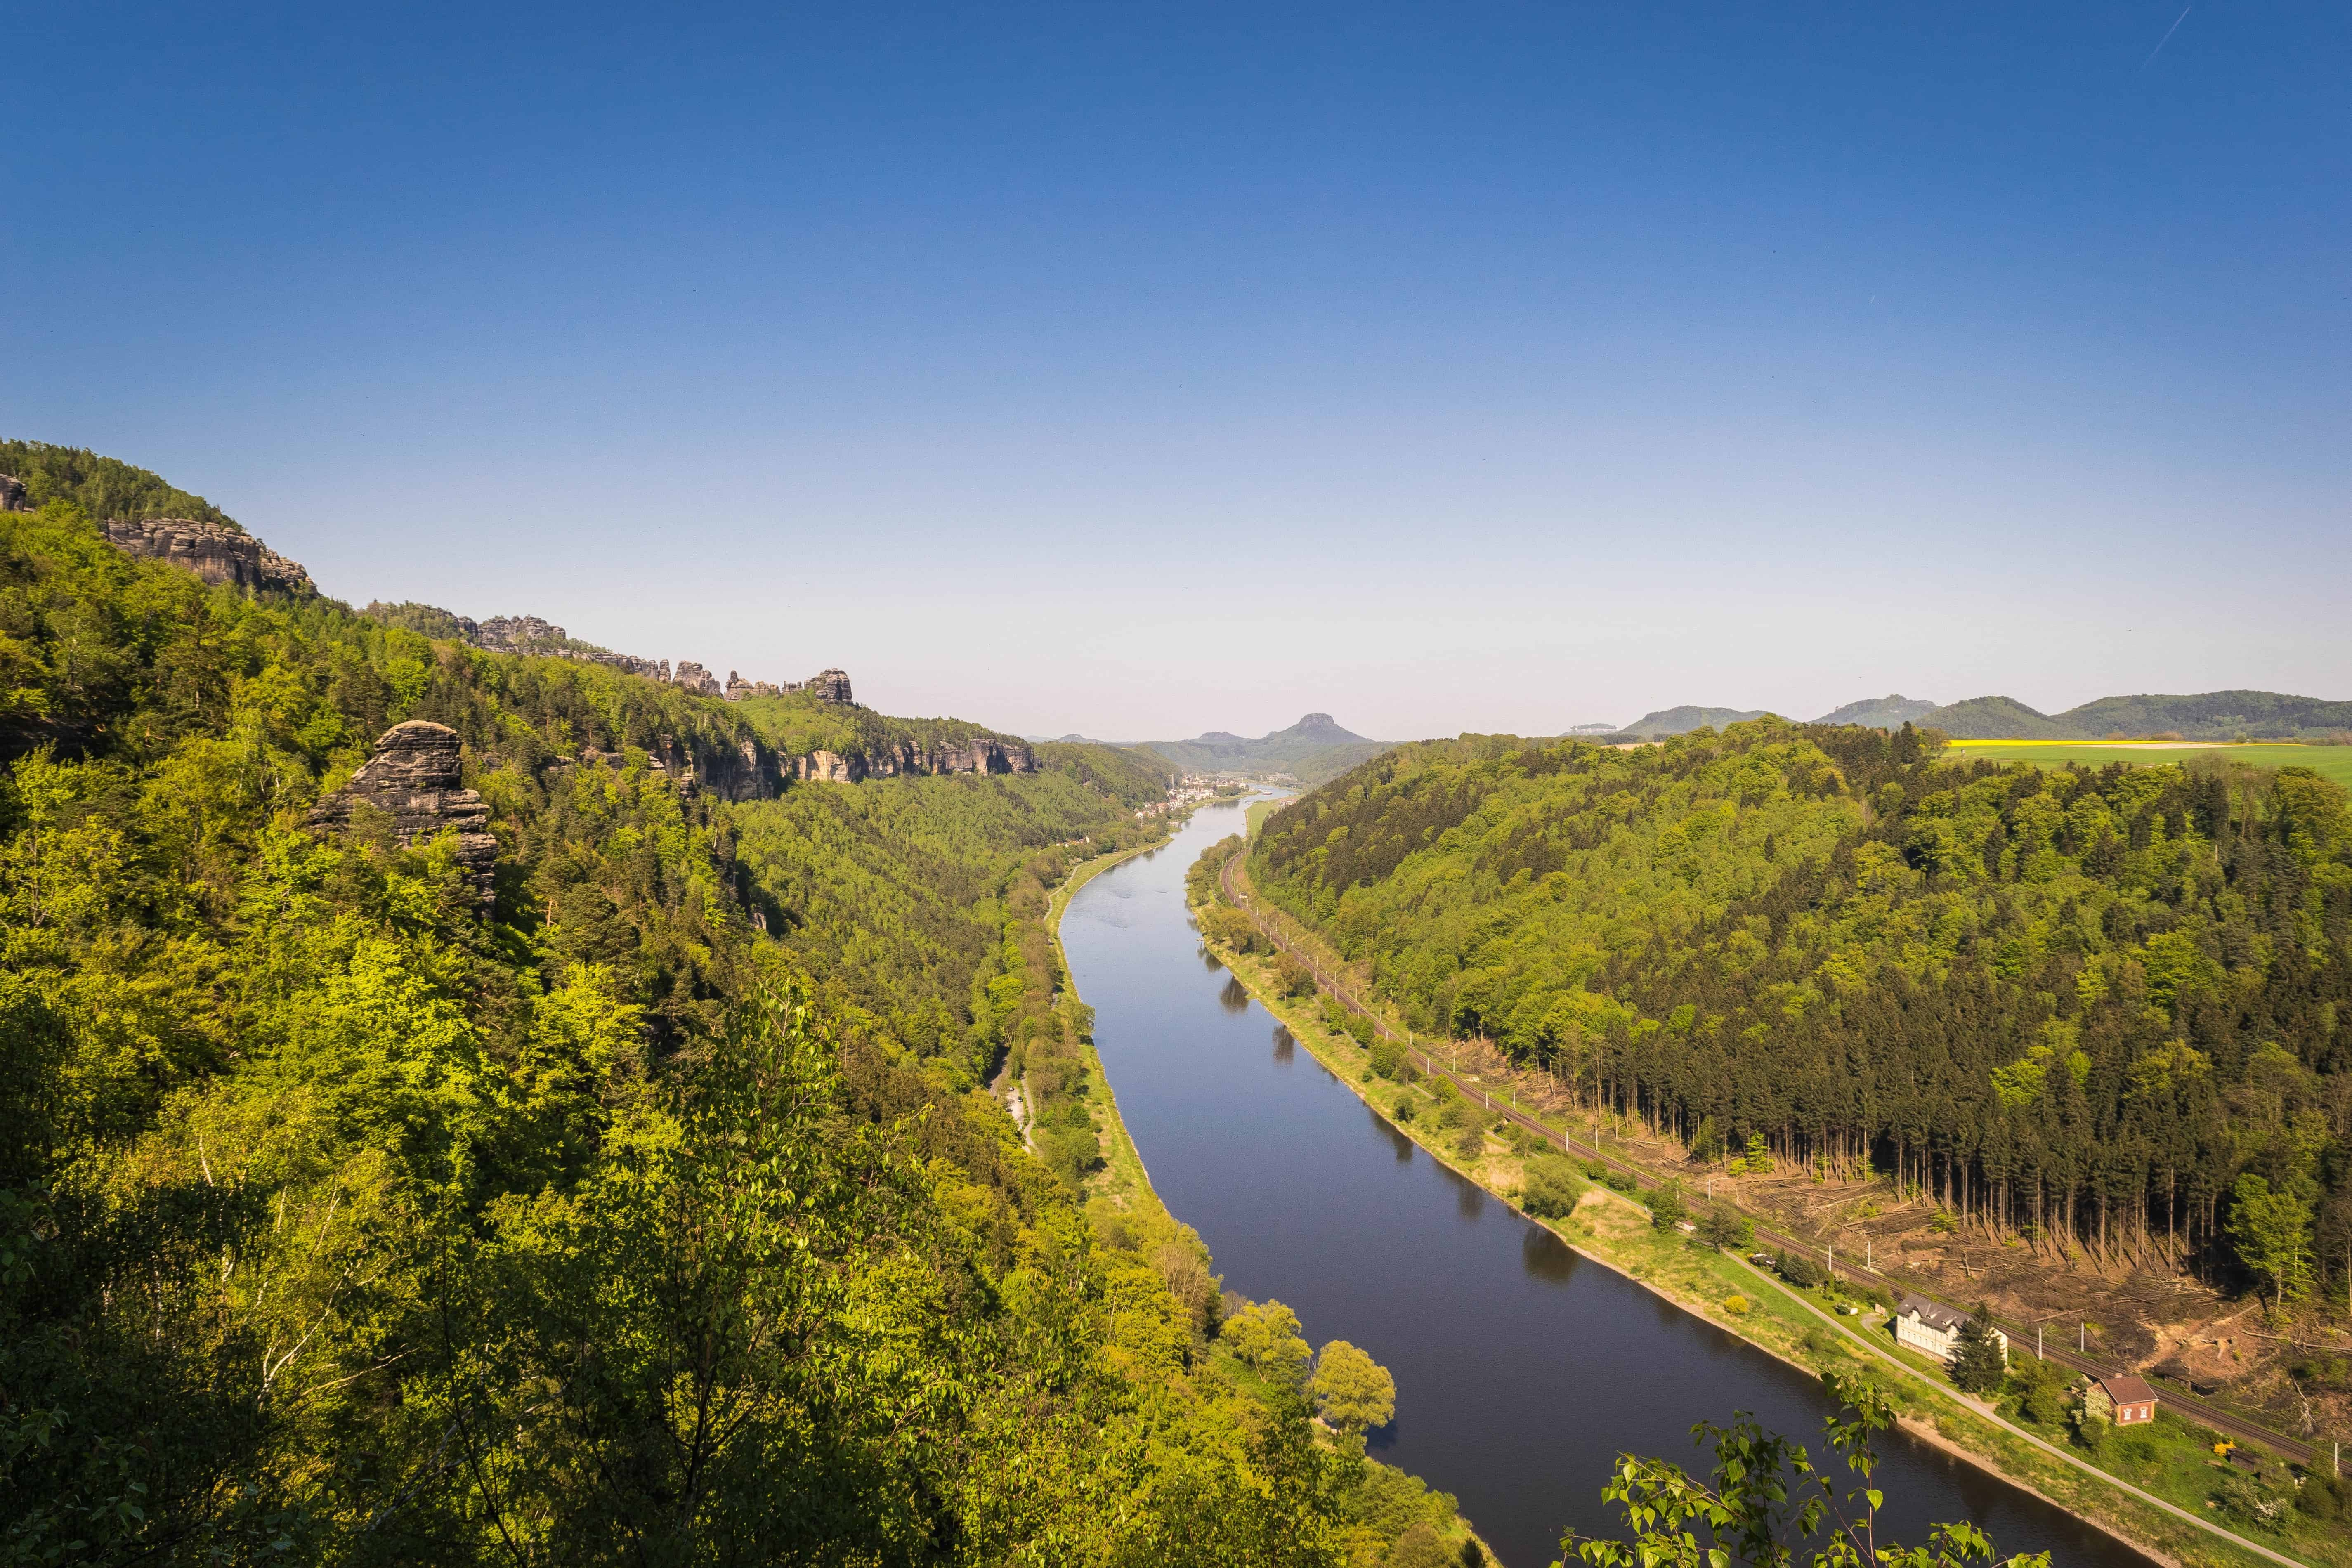 Free picture: river, landscape, nature, blue sky, water